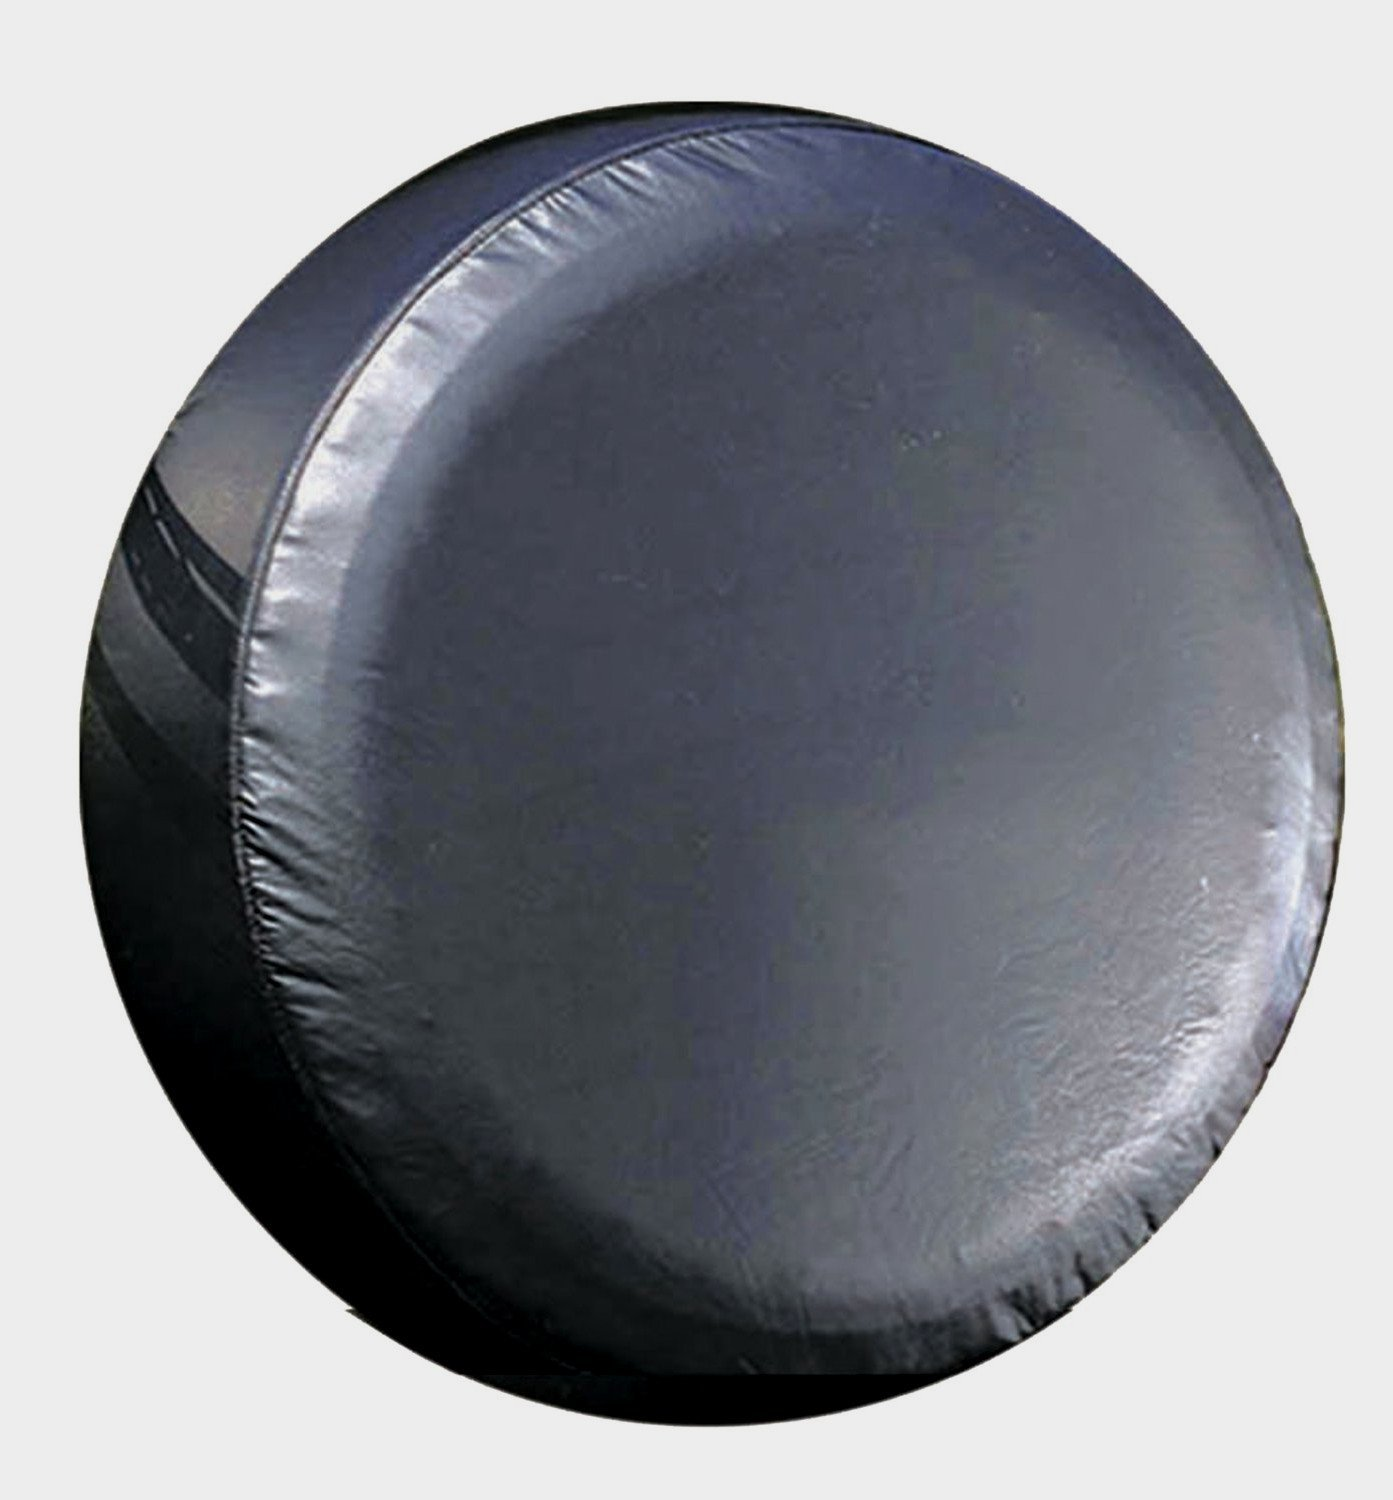 Extra Large Black Universal Spare Tire Cover fits 32 - 33